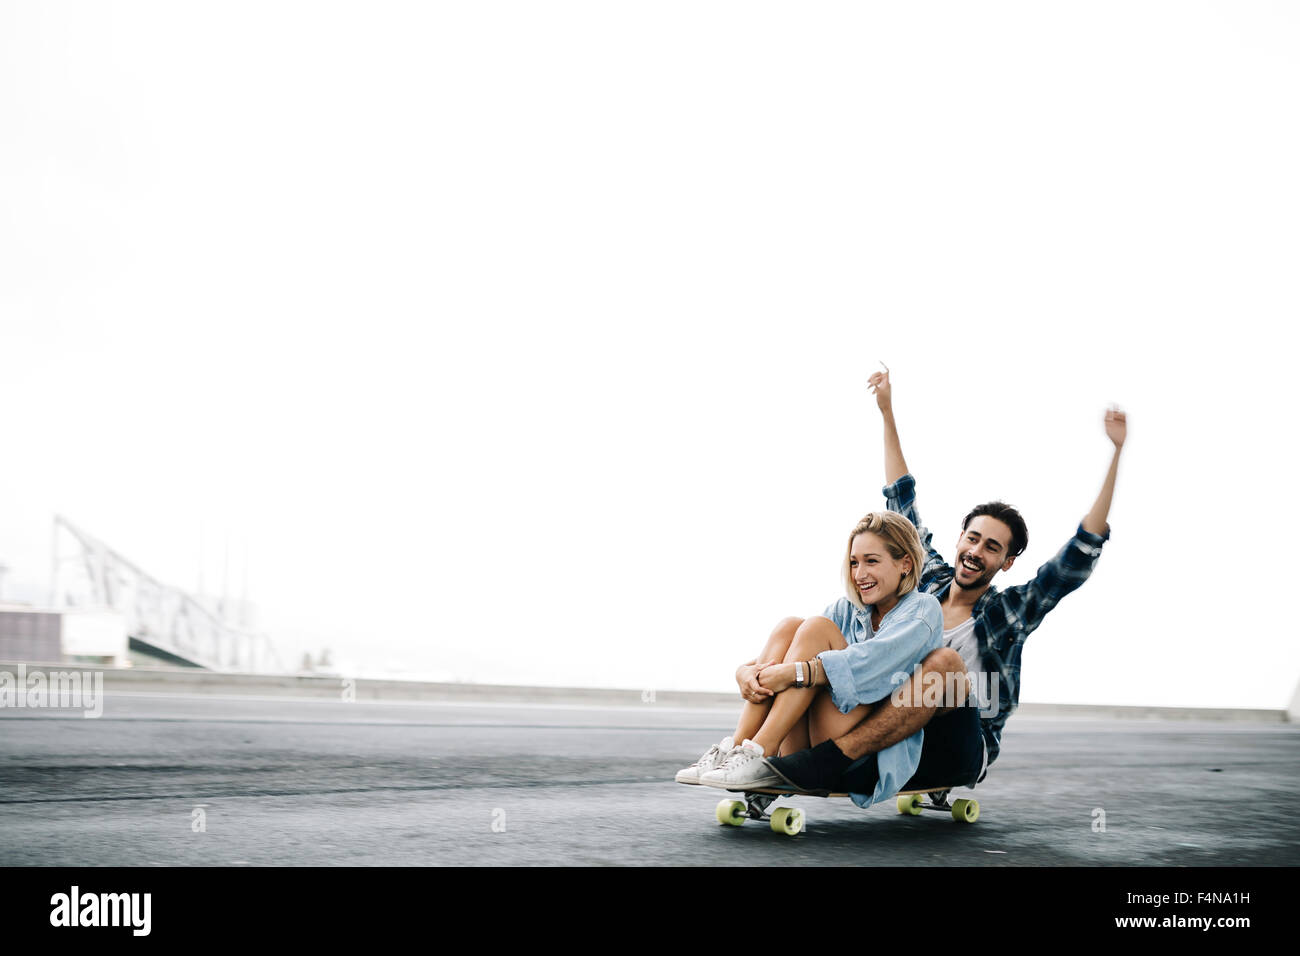 Young couple cruising on a longboard Stock Photo